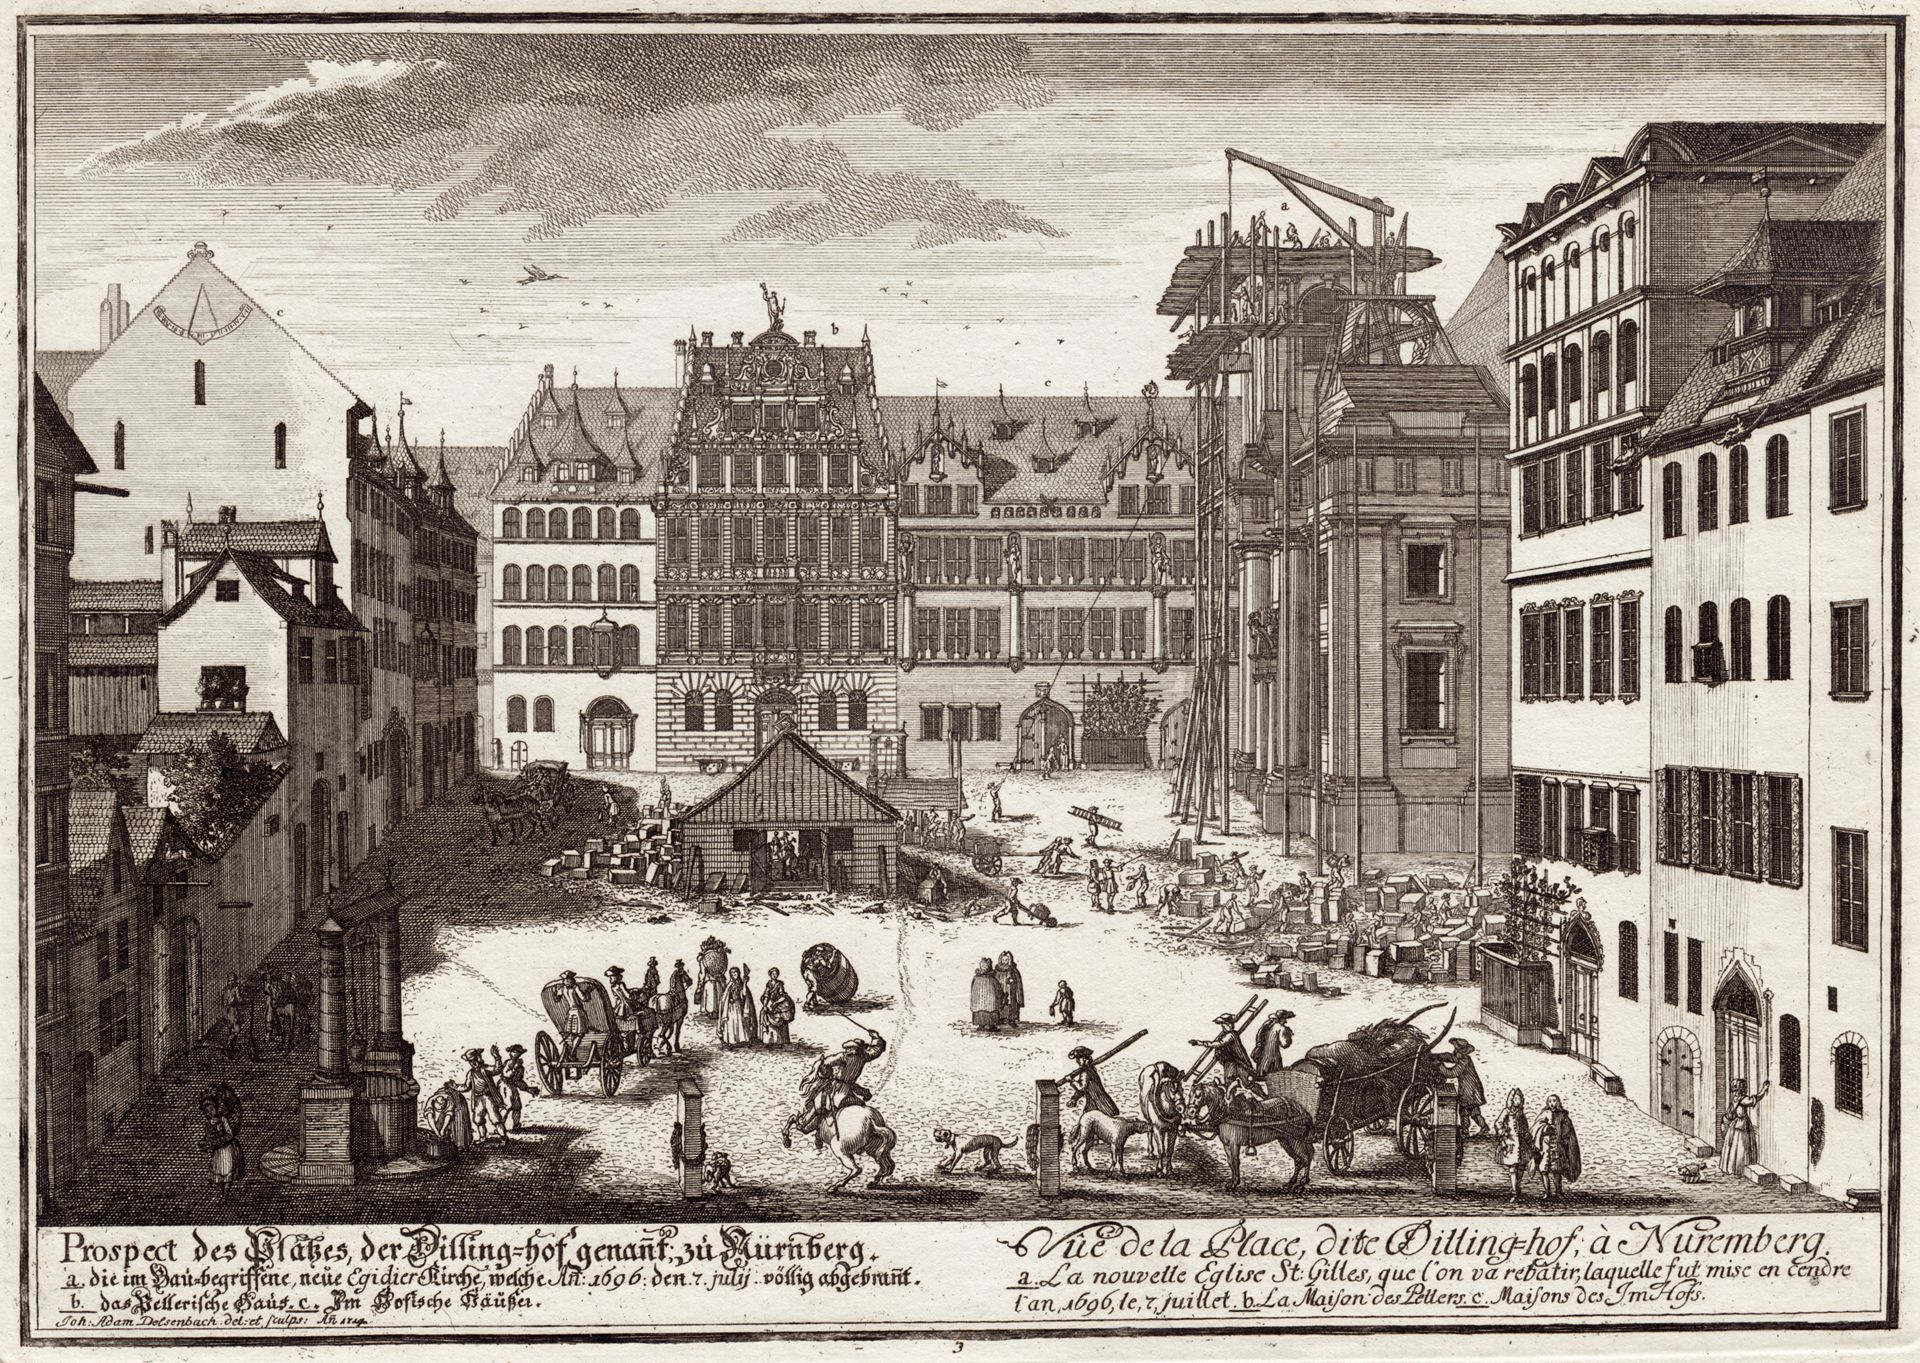 Prospect of the place called Dilling´s Court in Nuremberg General view